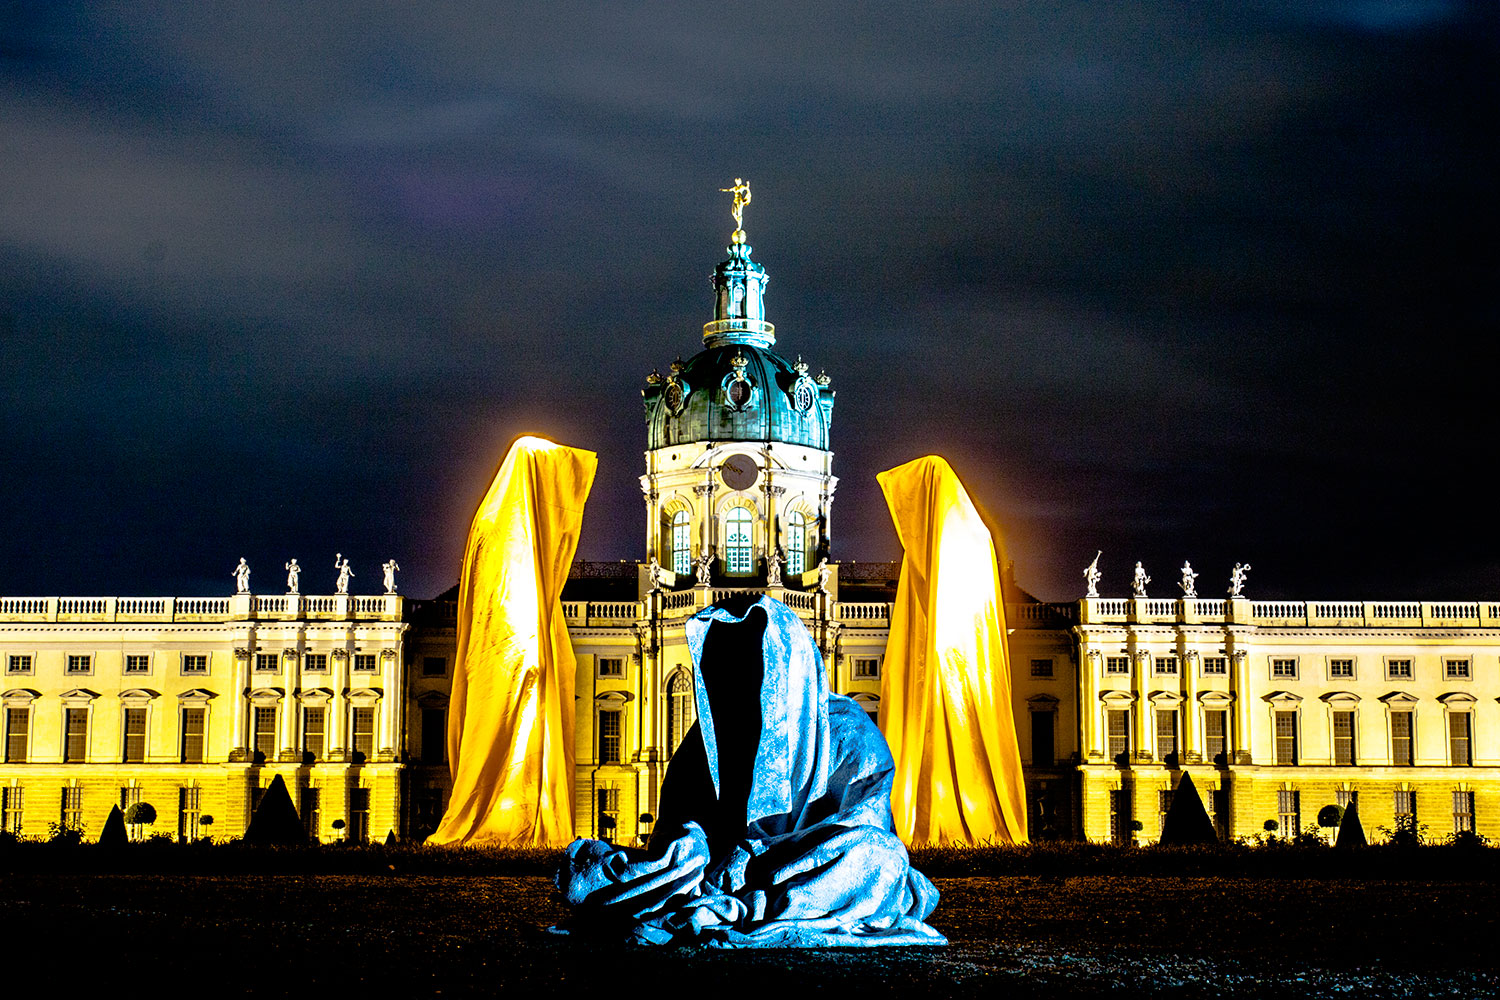 festival-of-lights-berlin-contemporary-light-art-sculpture-show-guardians-of-time-by-manfred-kielnhofer-castle-schloss-charlottenburg-germany-7613y